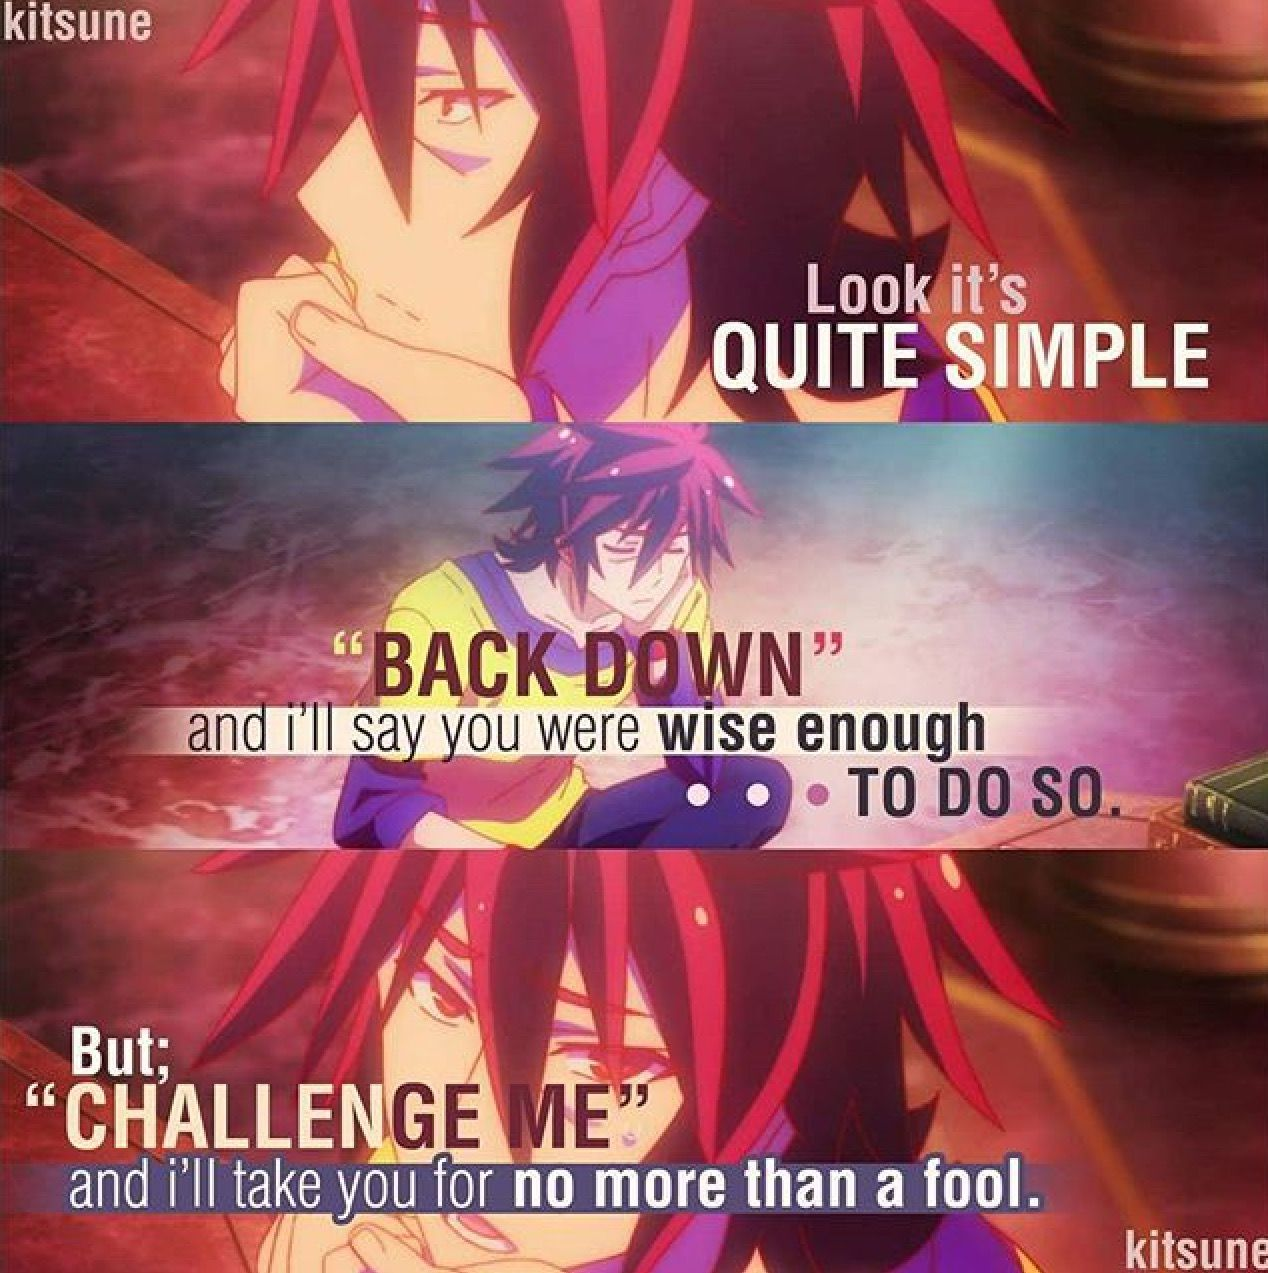 no game no life  Anime quotes inspirational, Anime love quotes